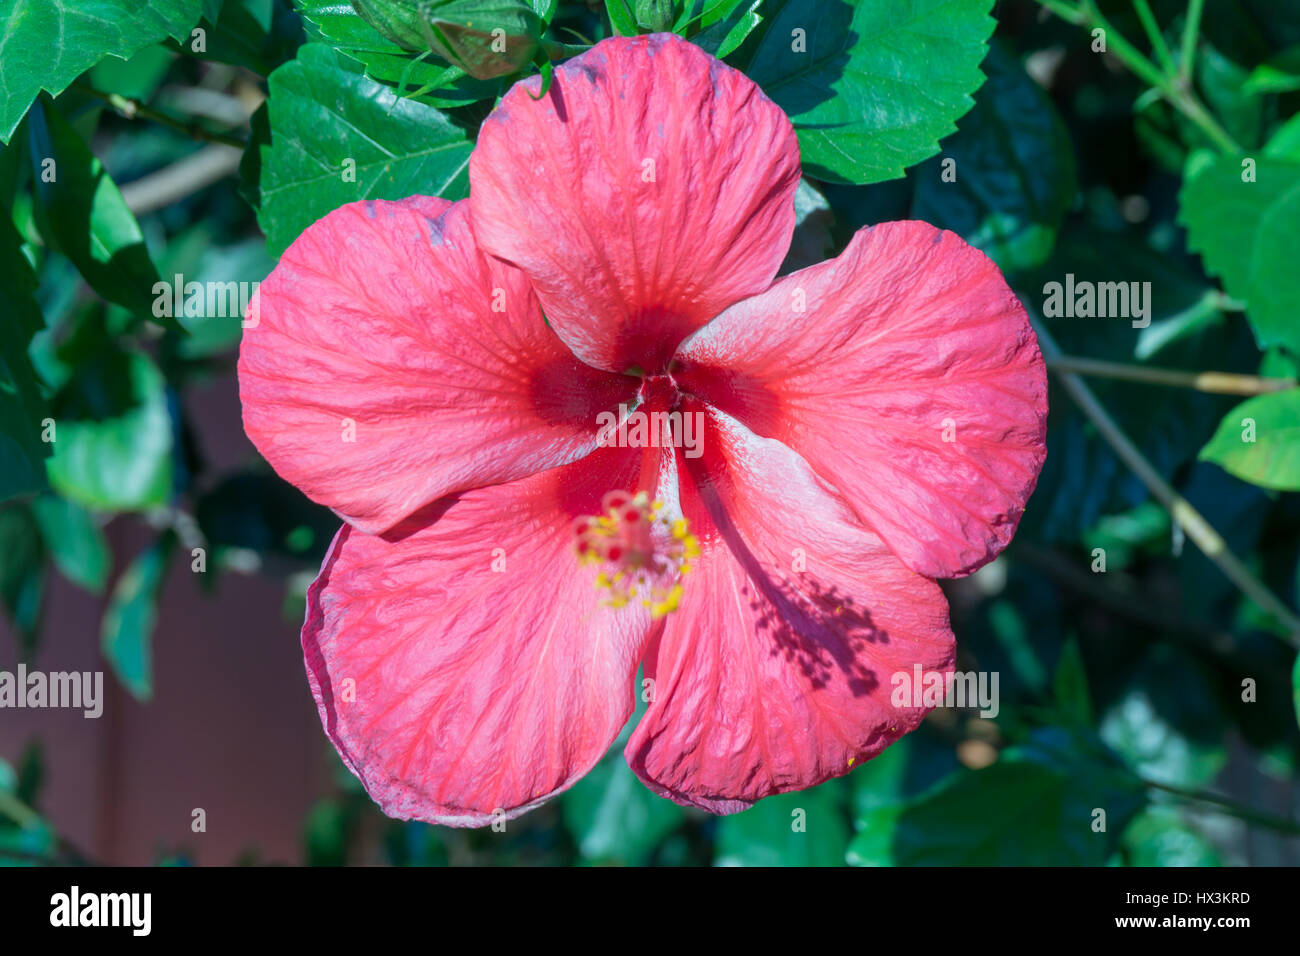 Tropical flowers in philippines pink stock photos tropical flowers tropical flowers in the philippines pink petals stock image mightylinksfo